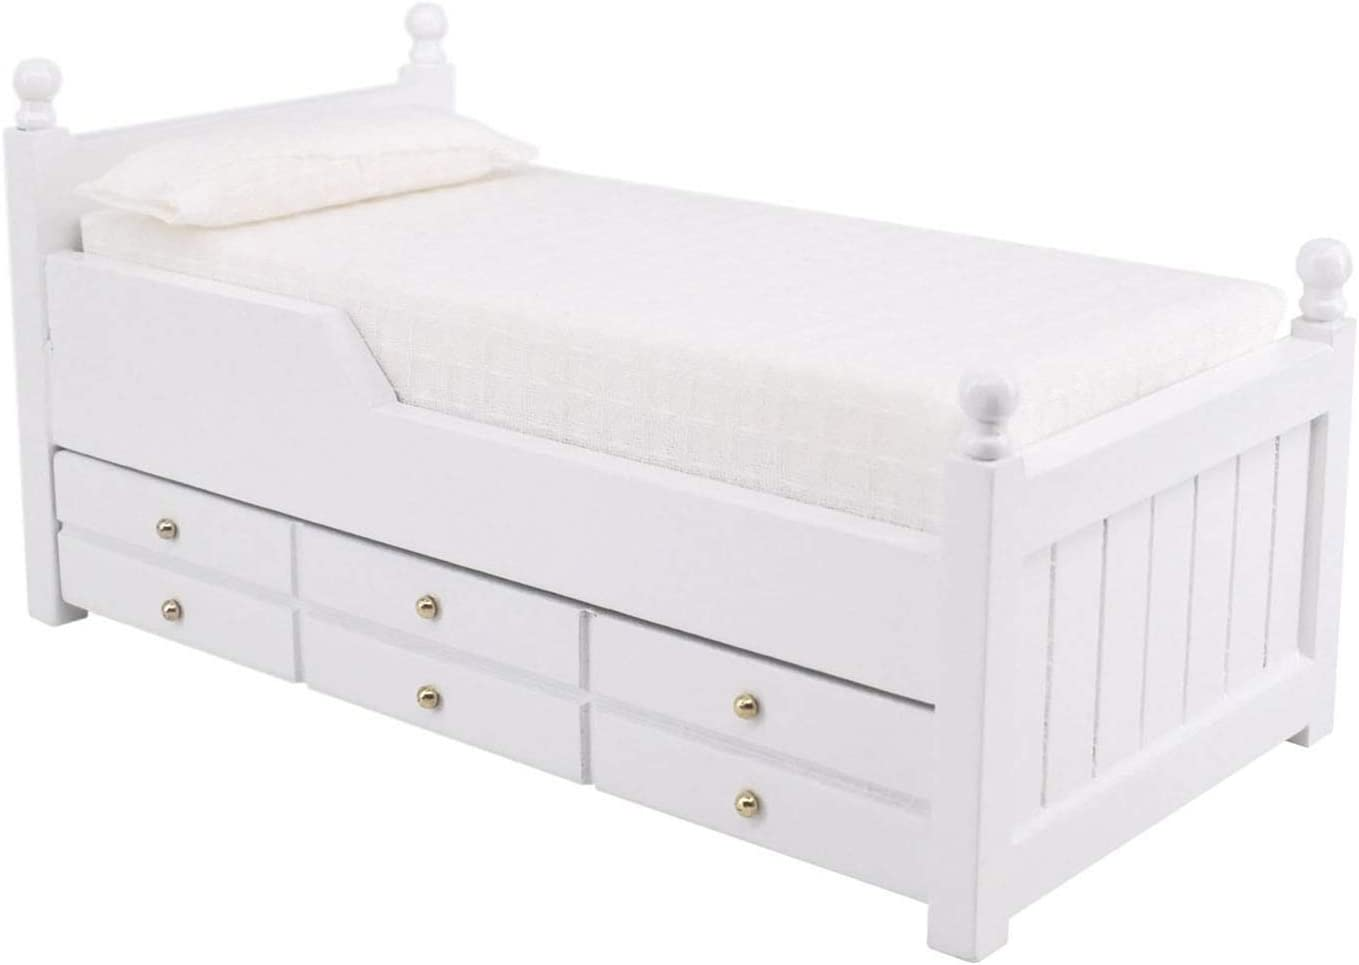 Doll House Mini Toy Furniture Bed Drawer Wooden Girls Favourite with Sliding Drawers 1:12 White